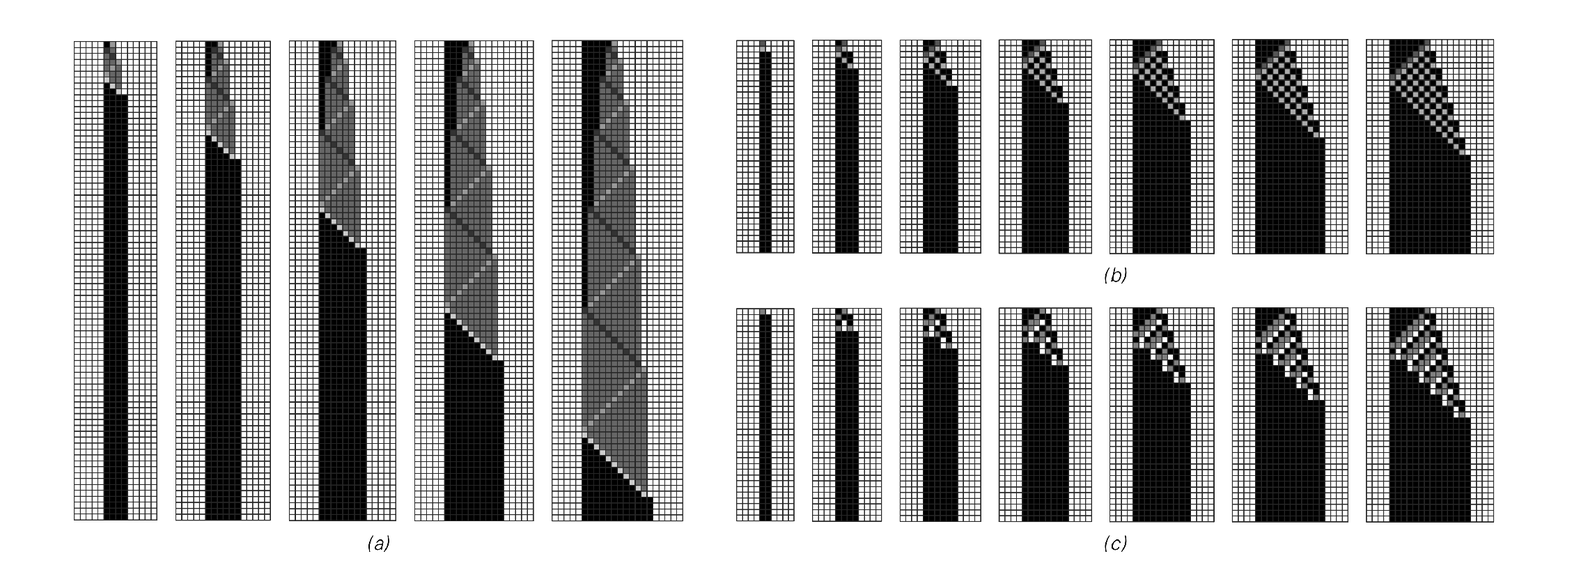 Examples of cellular automata that can be viewed as achieving the purpose of doubling the width of the pattern given in their input